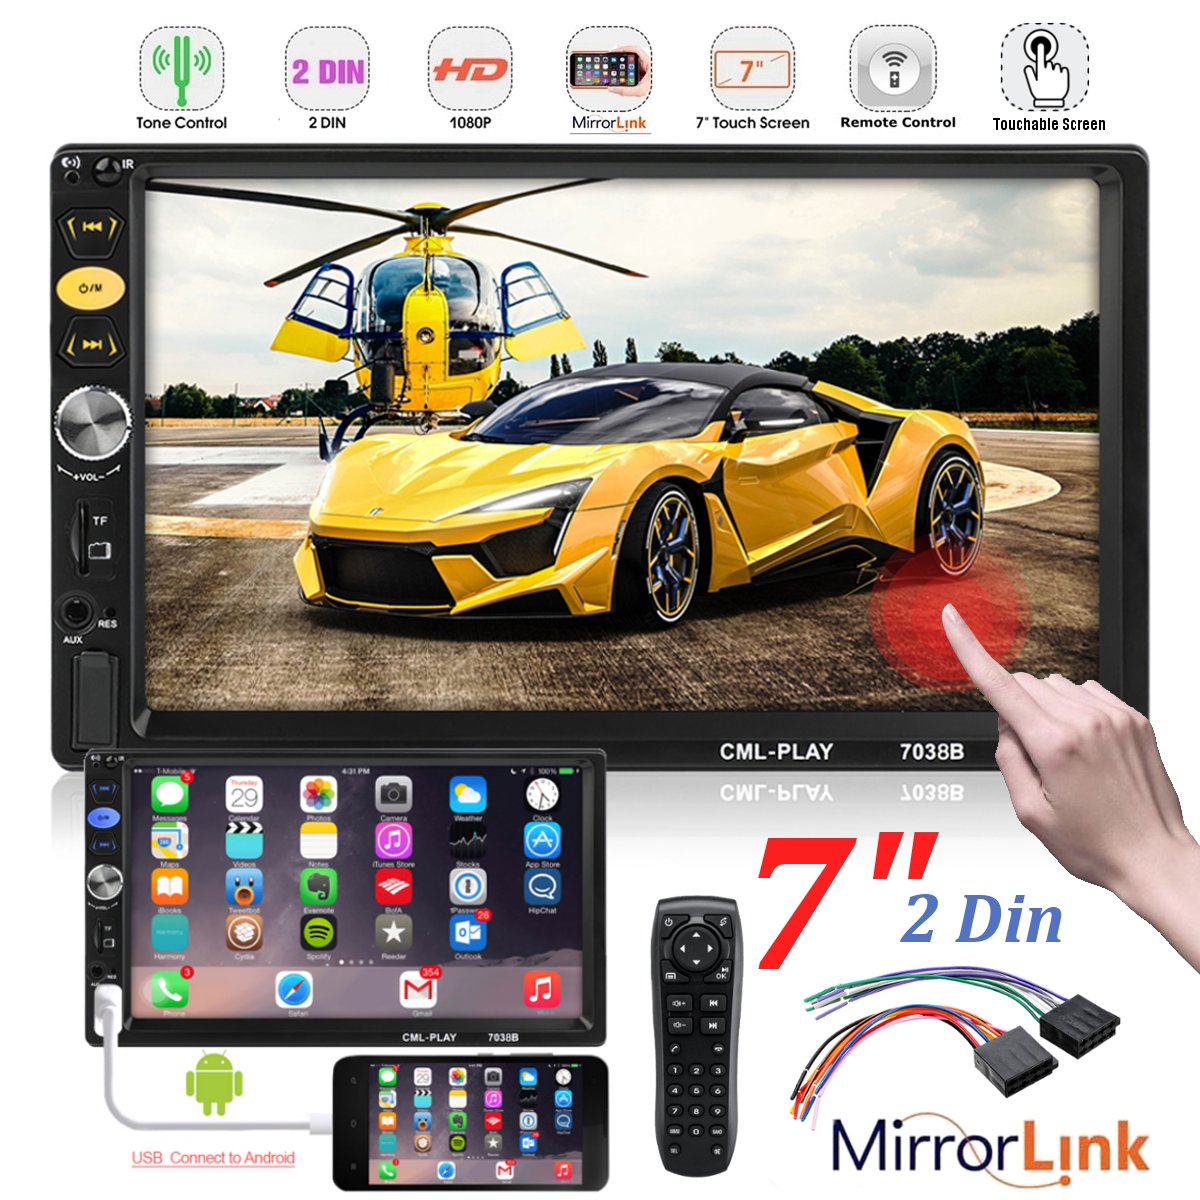 7Inch 2 DIN HD Car MP4 MP5 Player FM Radio Stereo Touch Screen USB AUX bluetooth In Dash